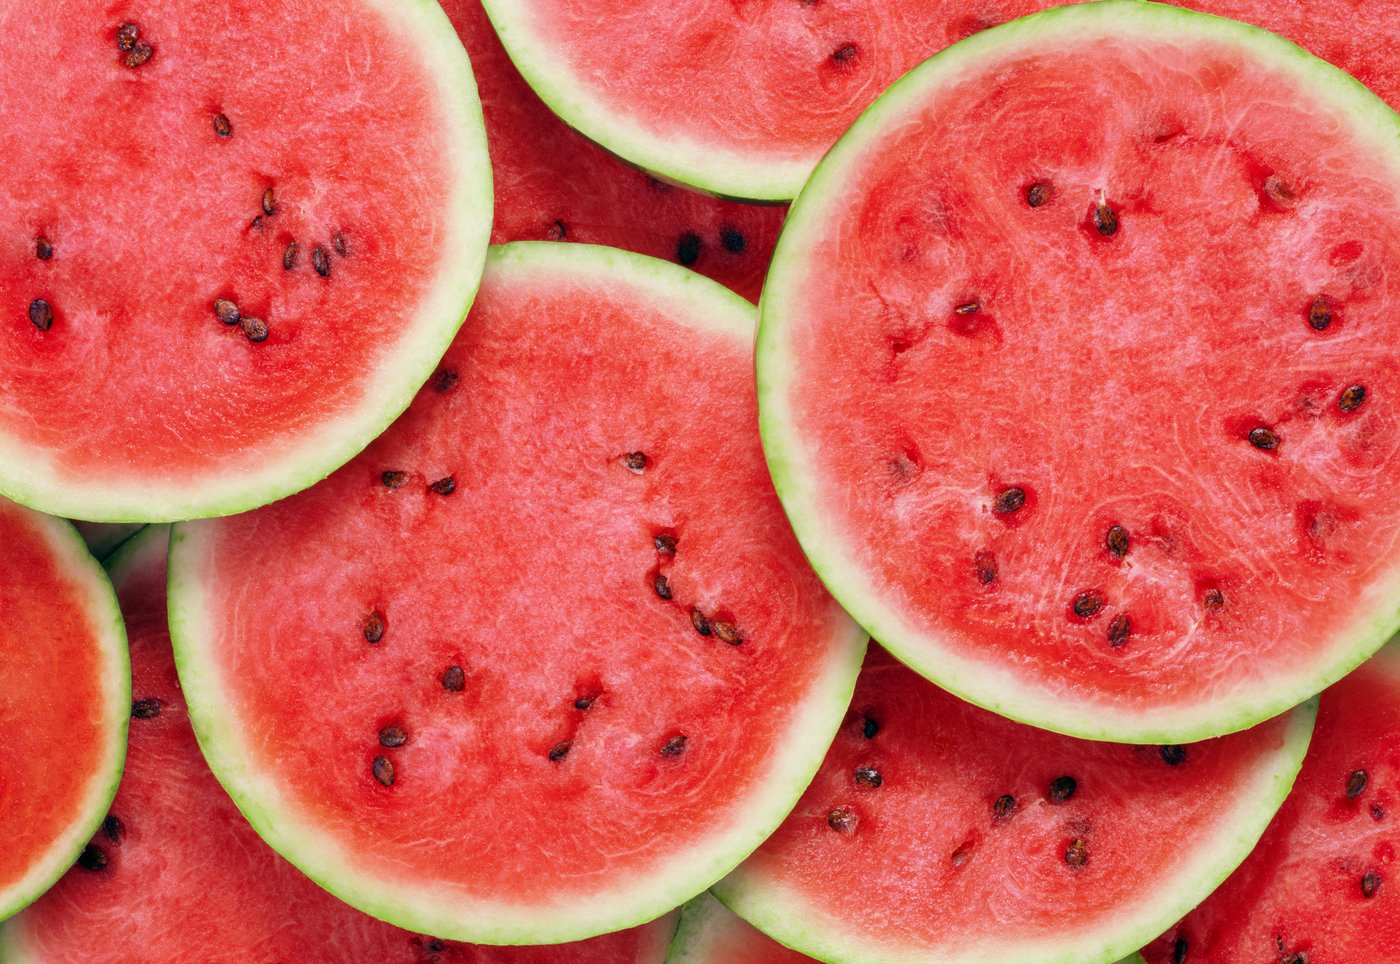 Watermelon slices - Pink with seeds